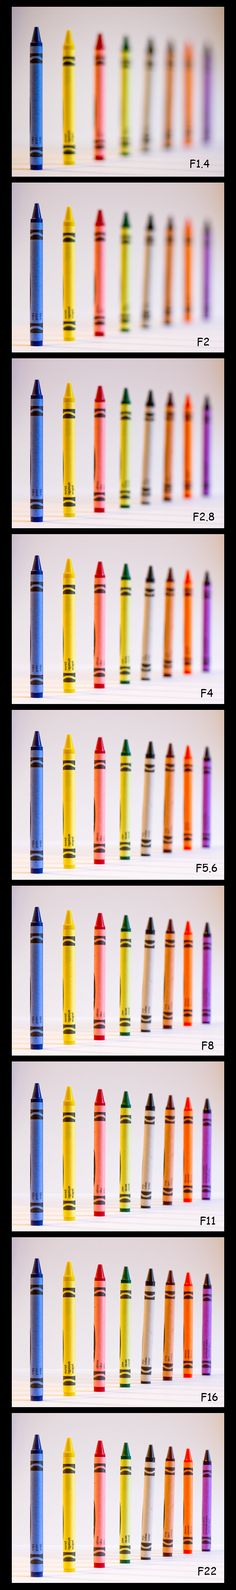 Aperture/Depth of Field comparison charts and a beginner's how-to.